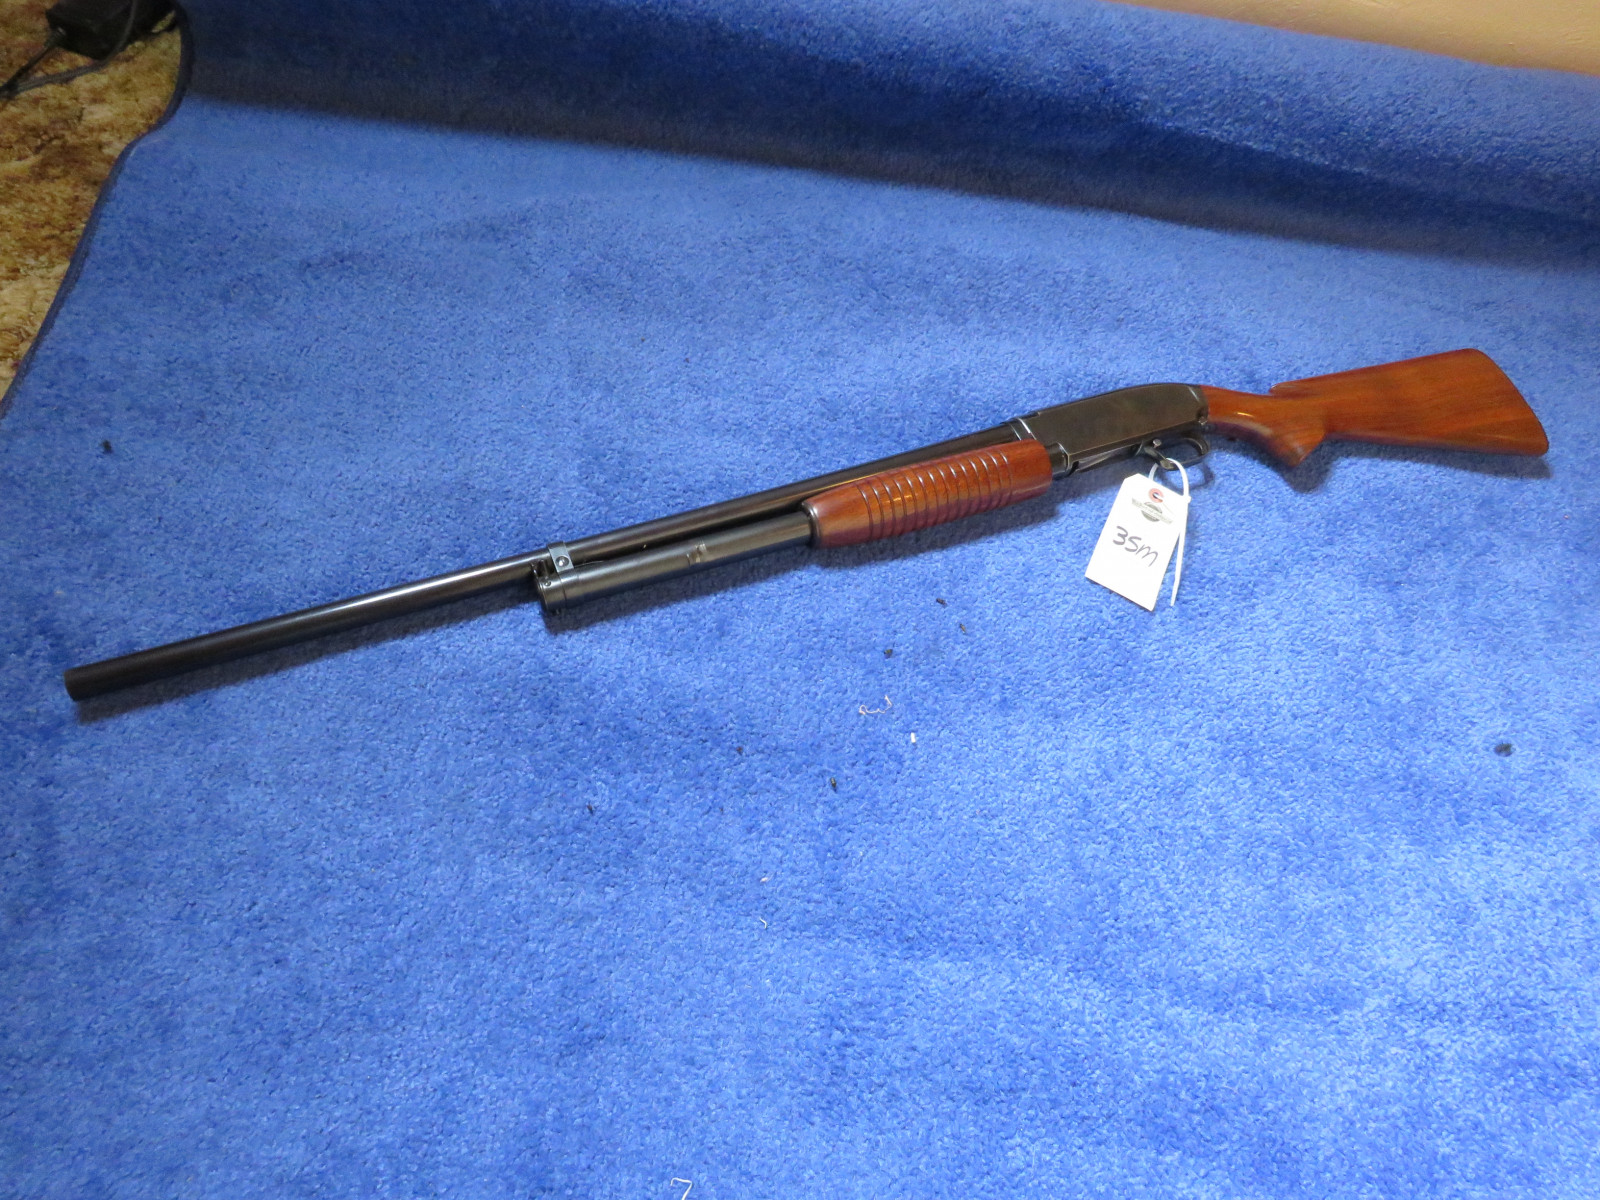 Winchester Model 12 12 Gauge Shotgun - Image 2